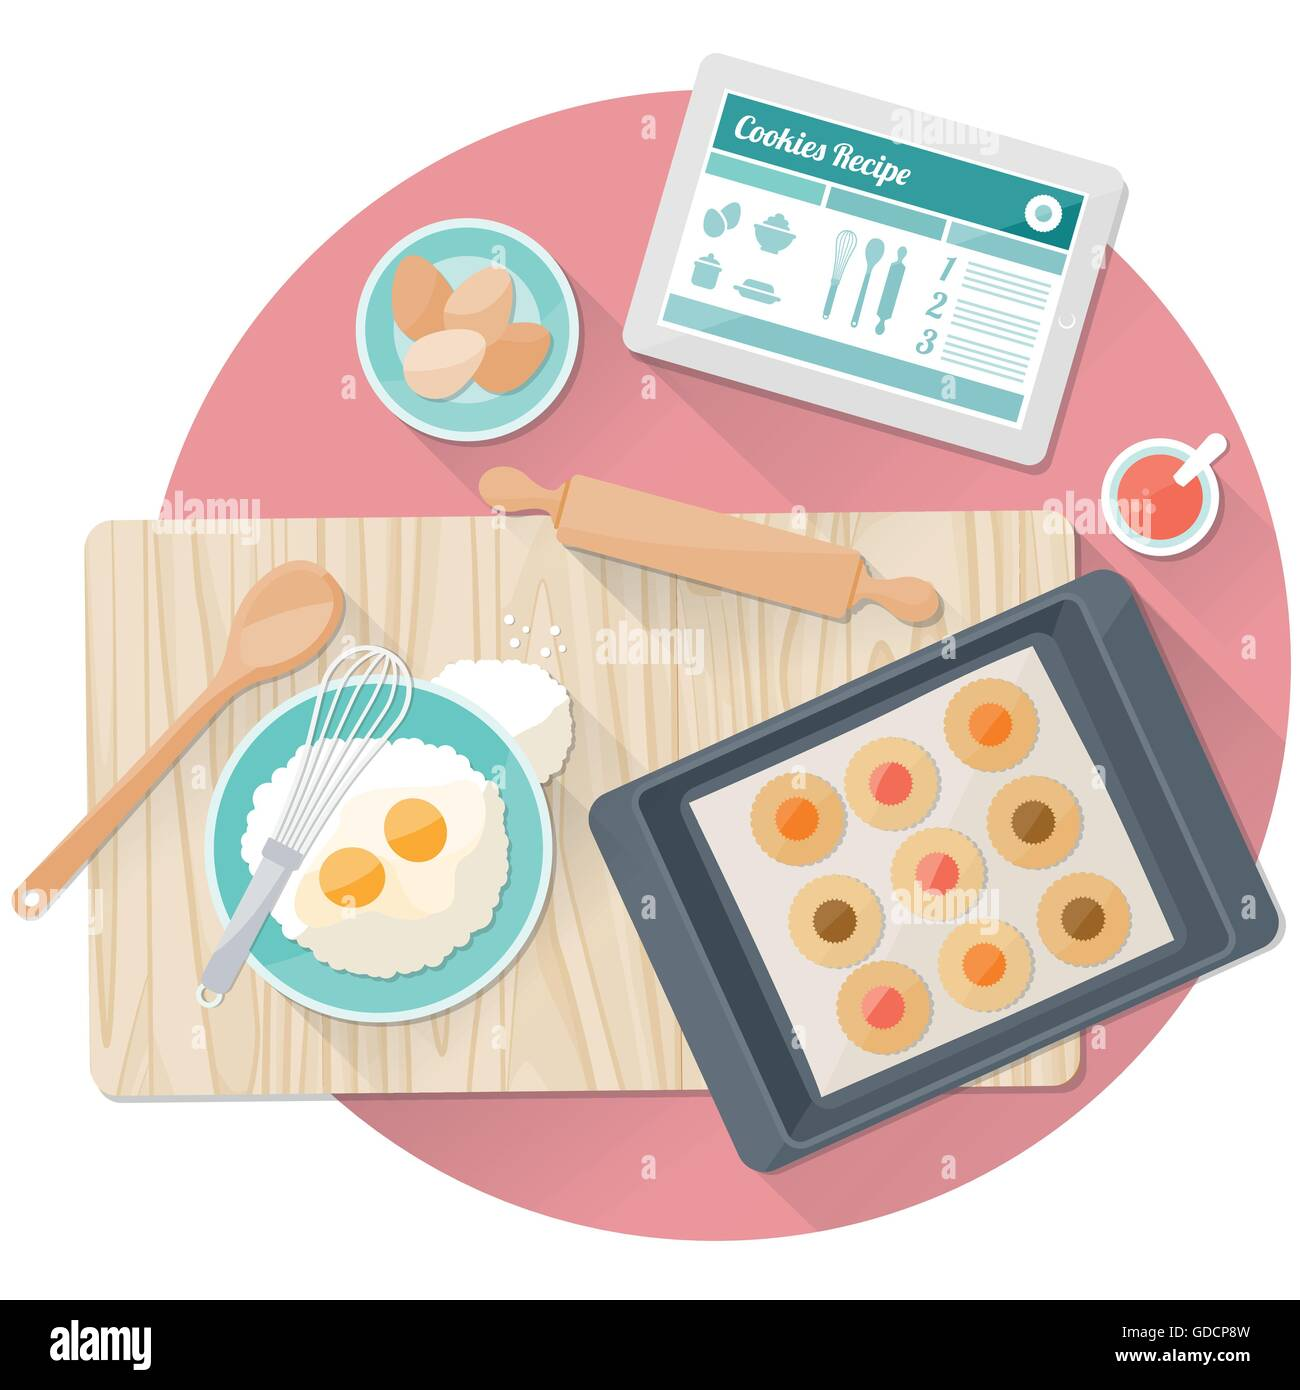 Cooking tasty cookies in the kitchen with utensils and digital tablet - Stock Vector